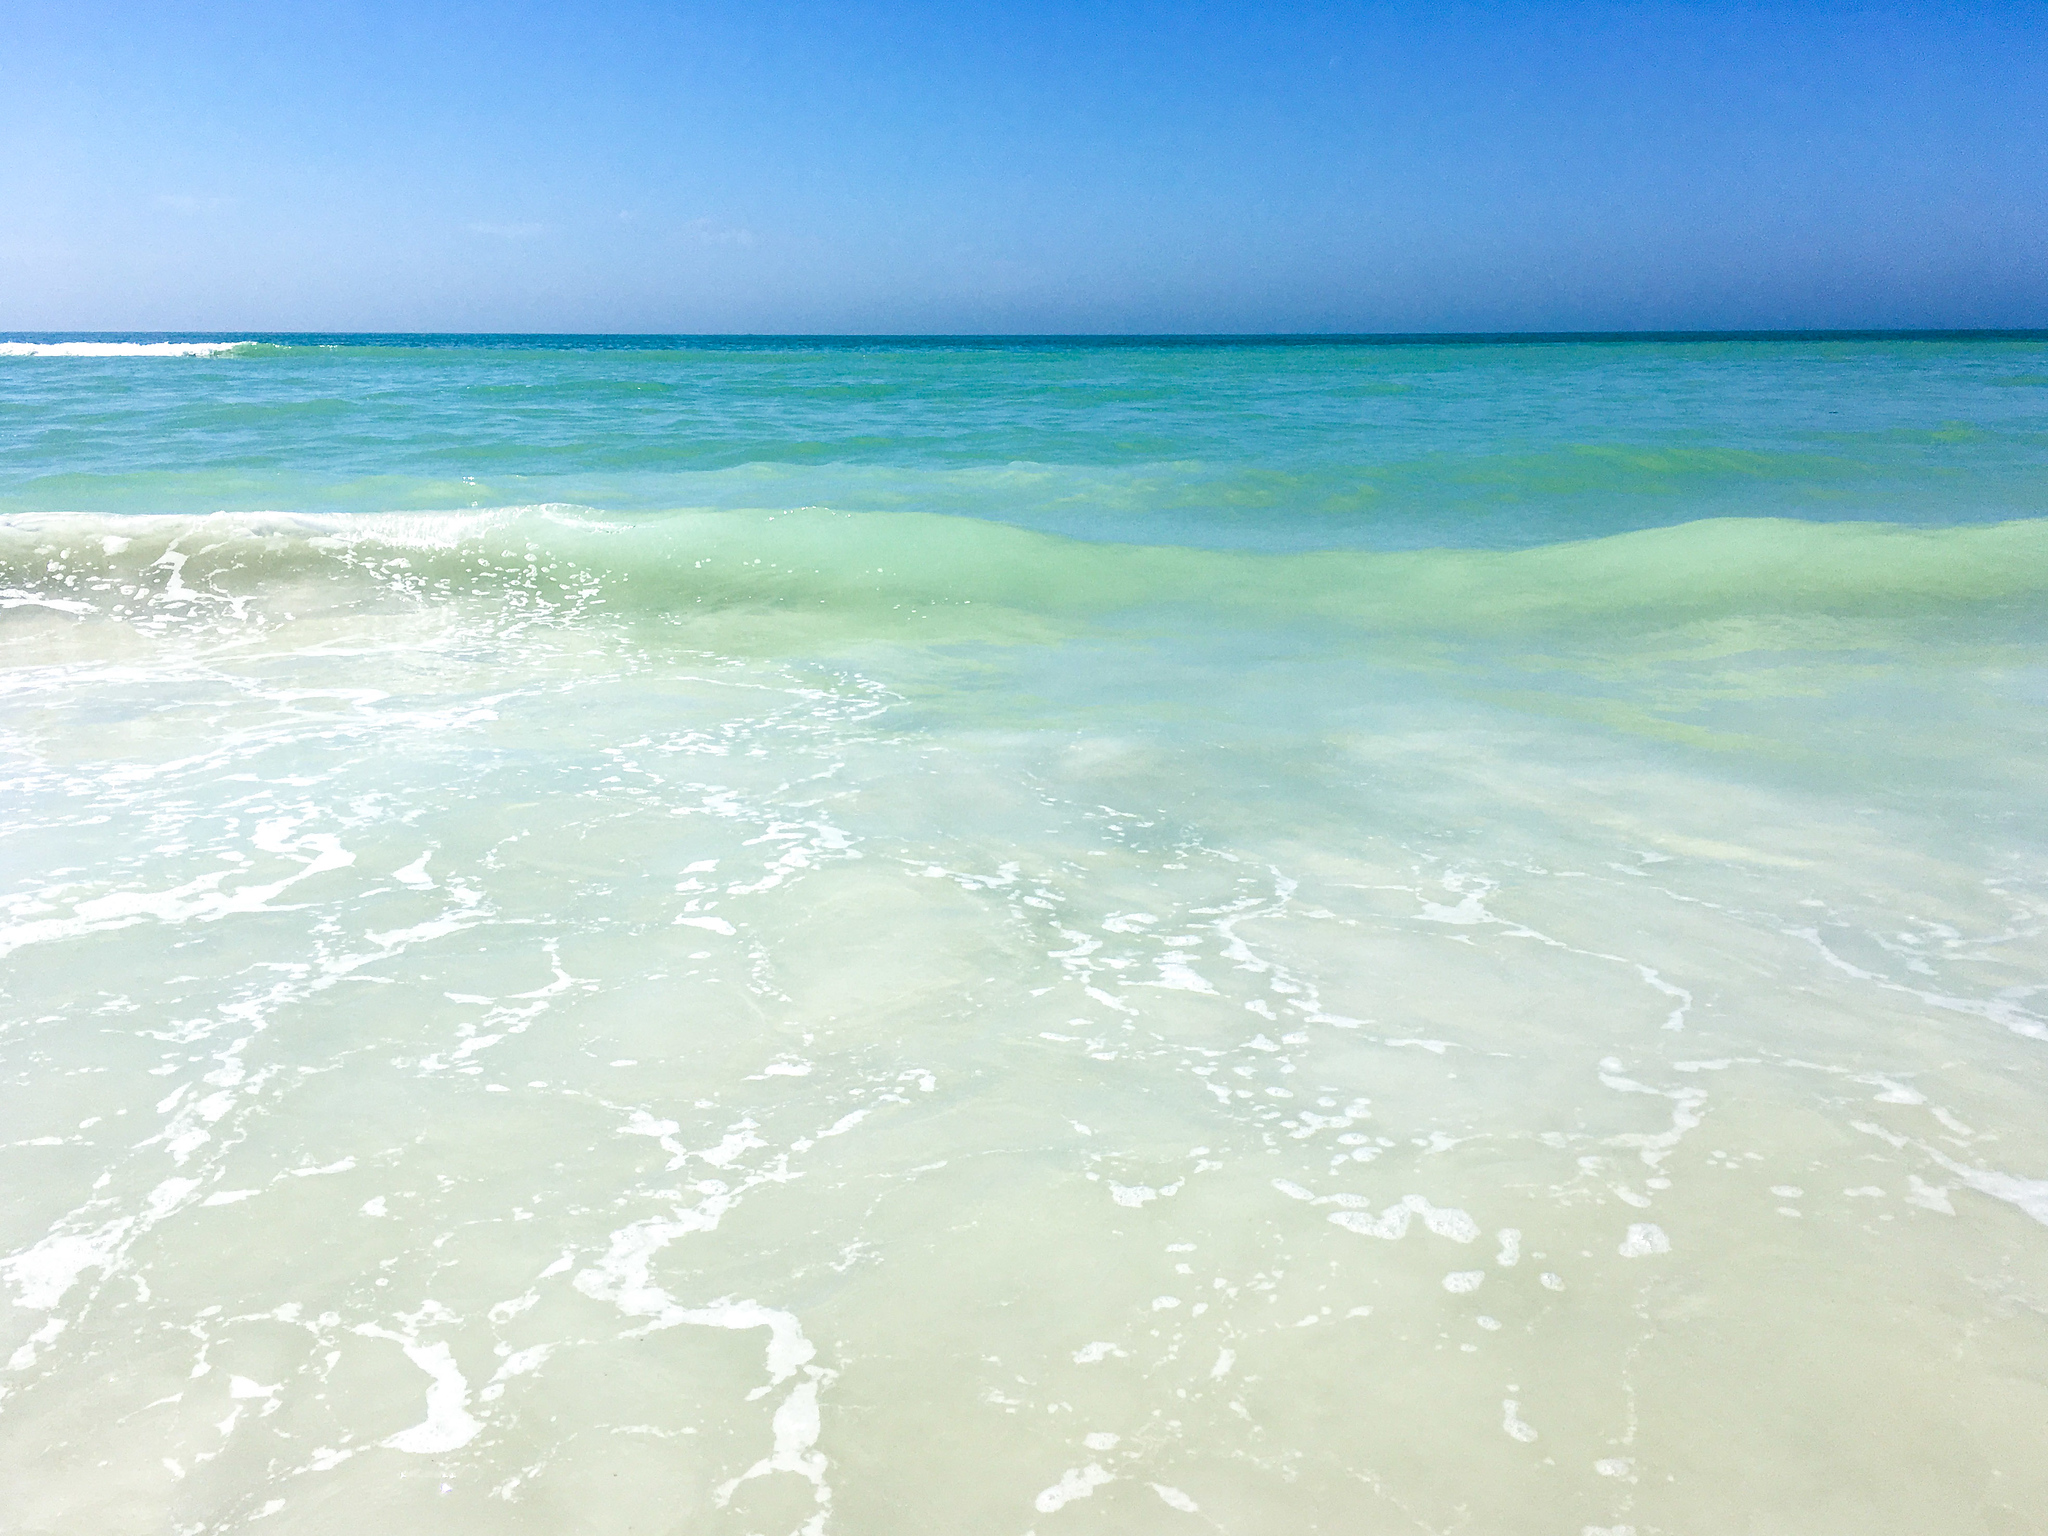 go to tranquil places like the beach when setting emotional boundaries